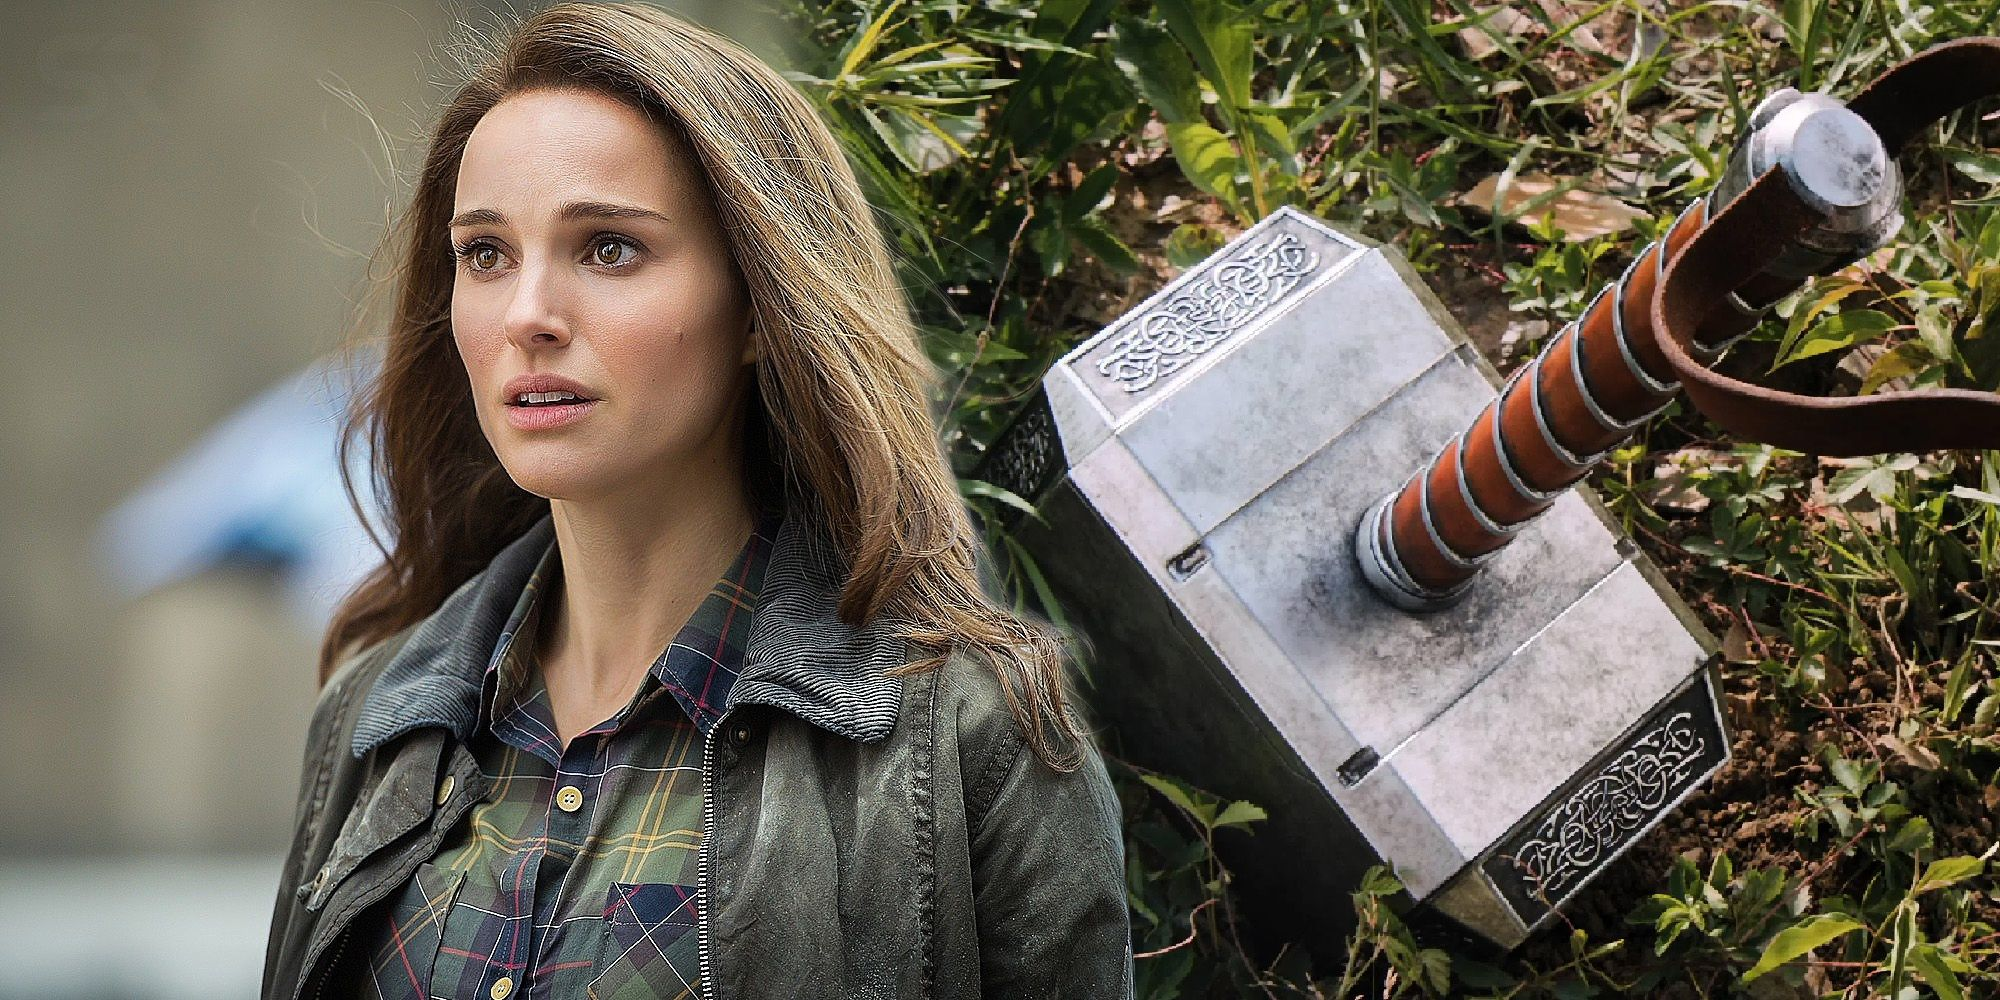 MCU Theory: Mjolnir Will Be The Cause Of Jane Foster's Cancer In Thor 4